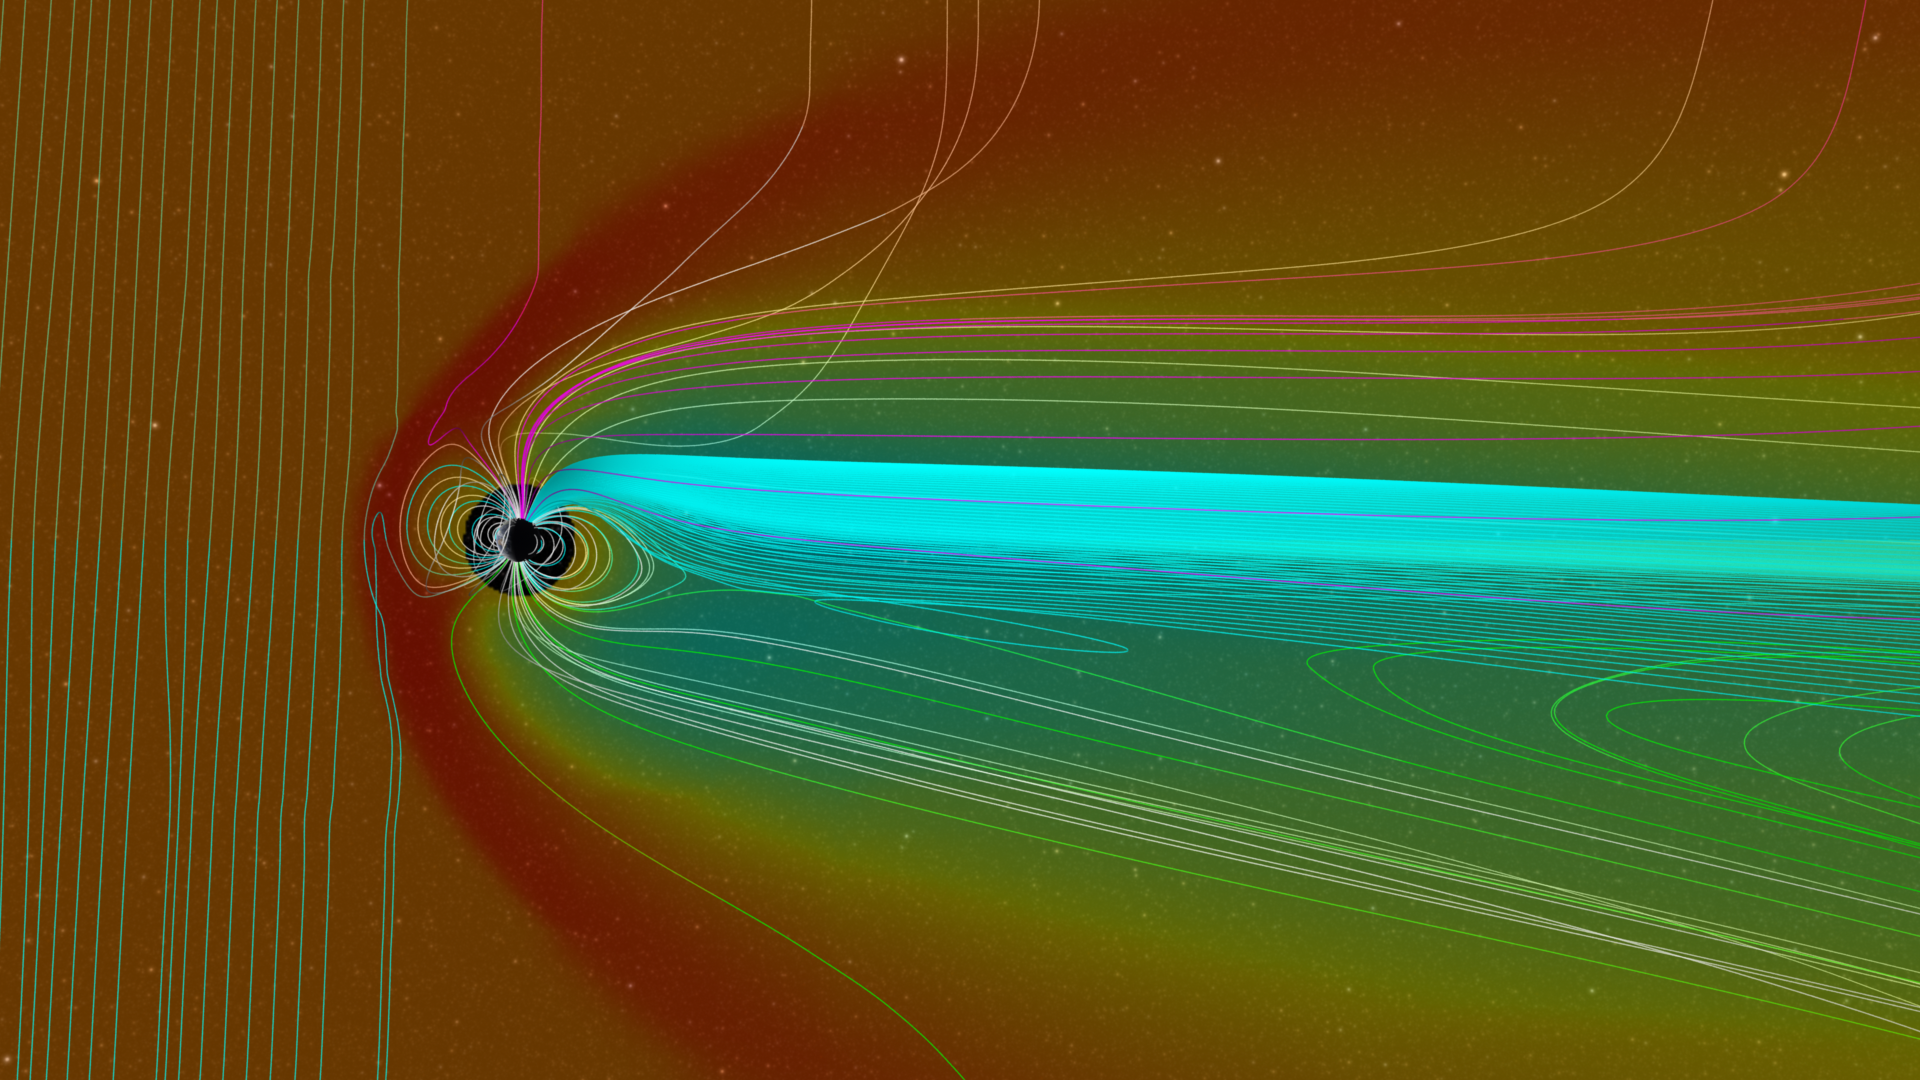 A profile view of the magnetic field and density data during a solar outburst. Image Credit: NASA's Scientific Visualization Studio, the Space Weather Research Center (SWRC), the Community-Coordinated Modeling Center (CCMC) and the Space Weather Modeling Framework (SWMF).